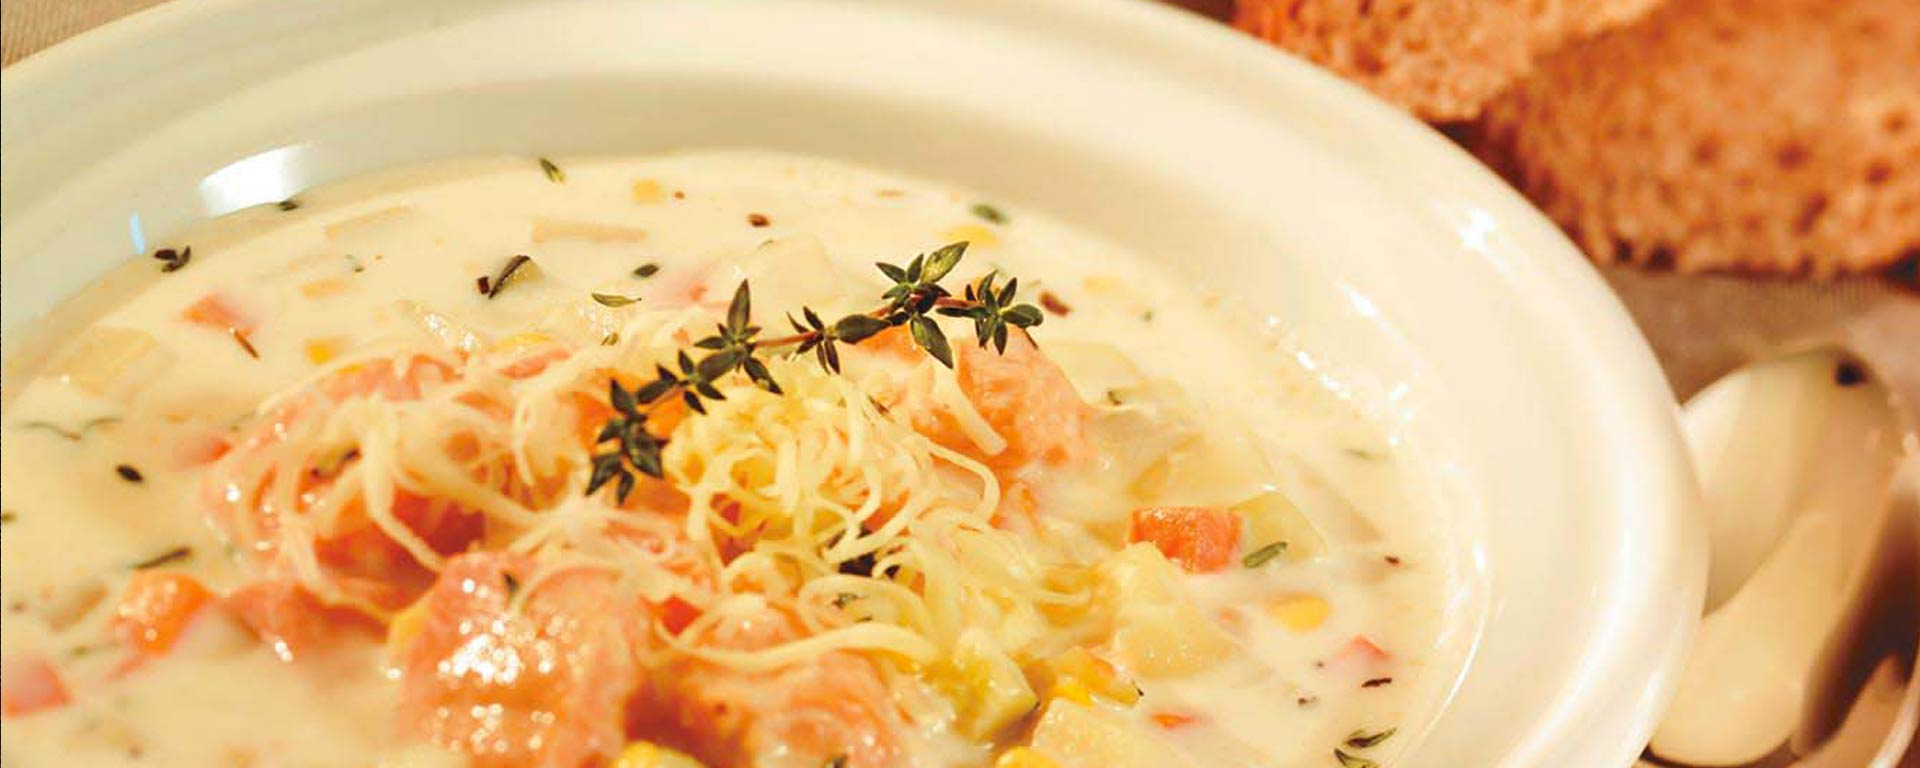 Photo for - Delicious Salmon Vegetable Chowder